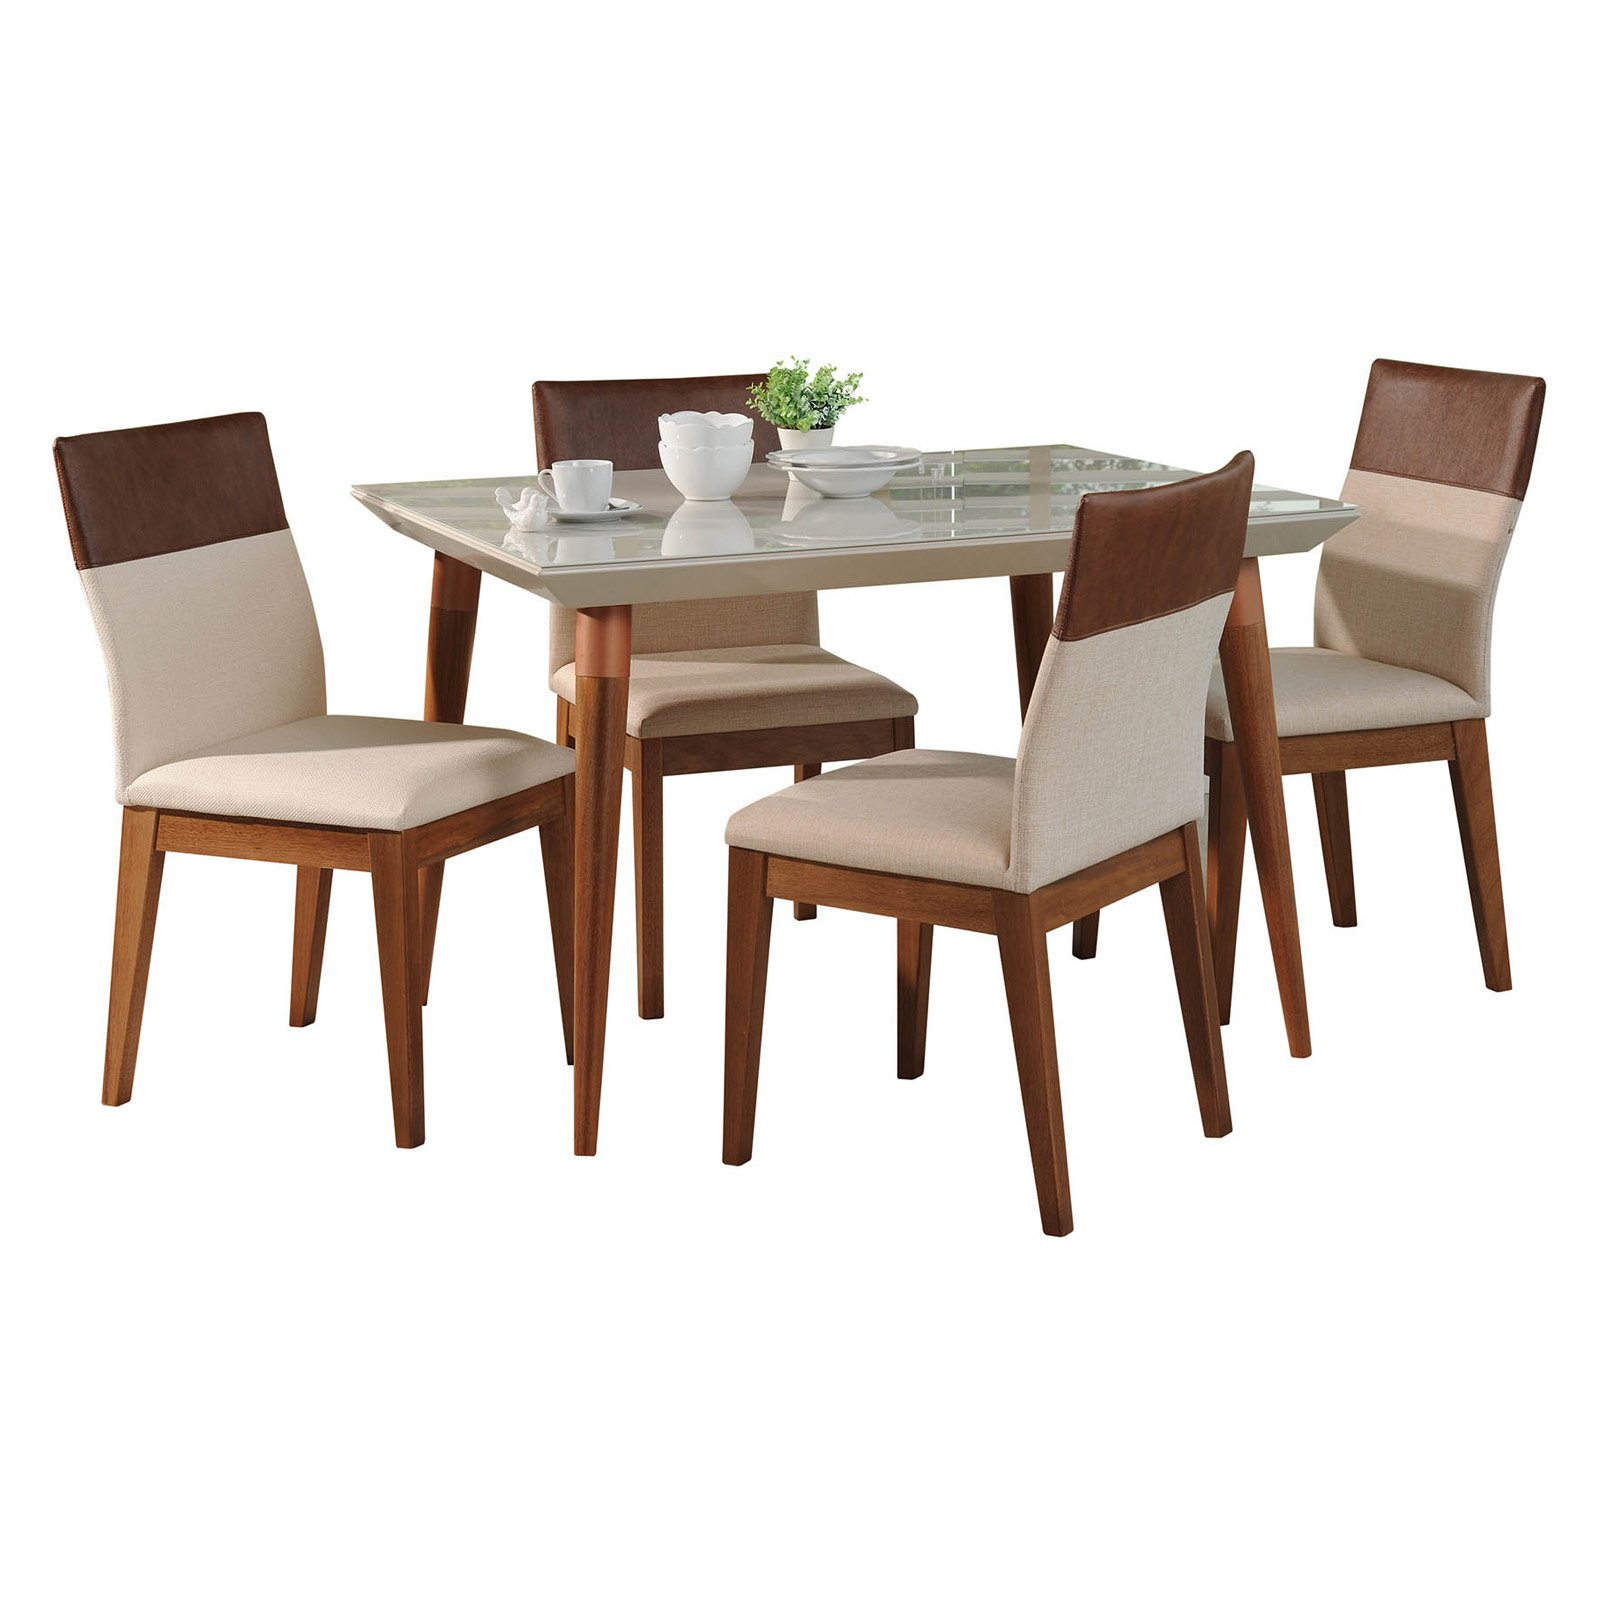 Manhattan Comfort Utopia and Duke 5 Piece Dining Table Set